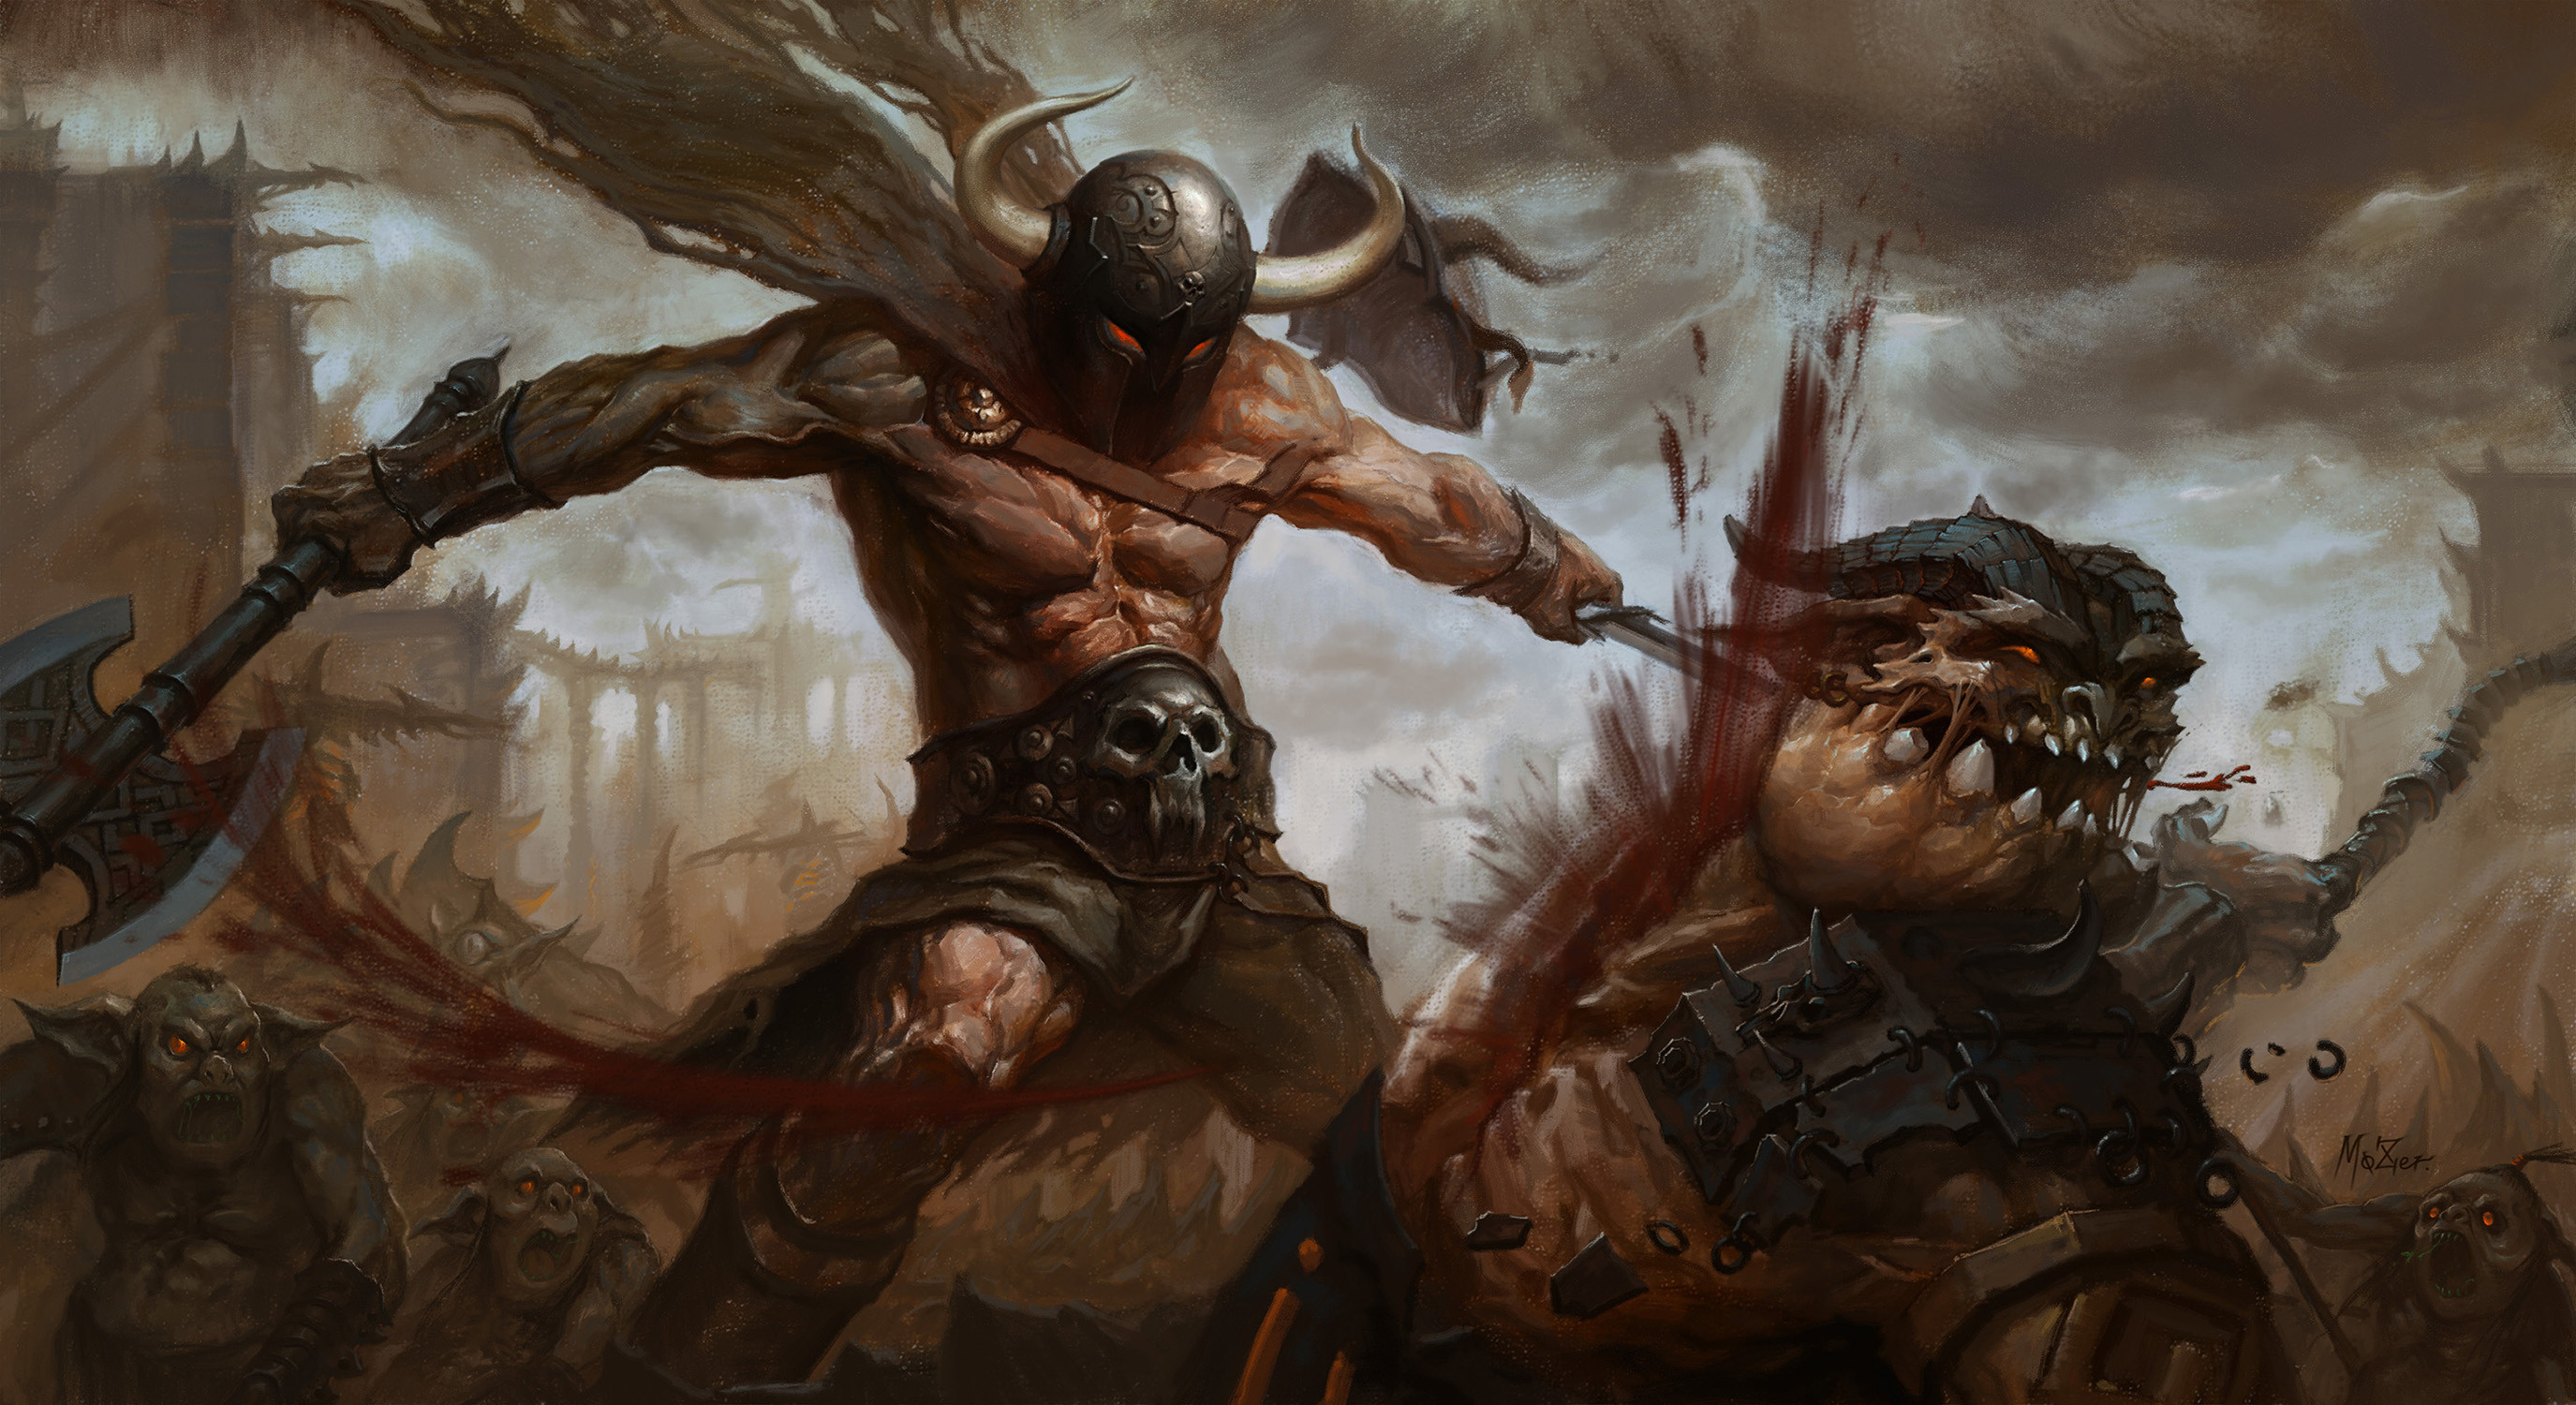 2750x1500 Battle Warrior Monster Battle Axes Blood Fantasy Wallpaper At Fantasy  Wallpapers